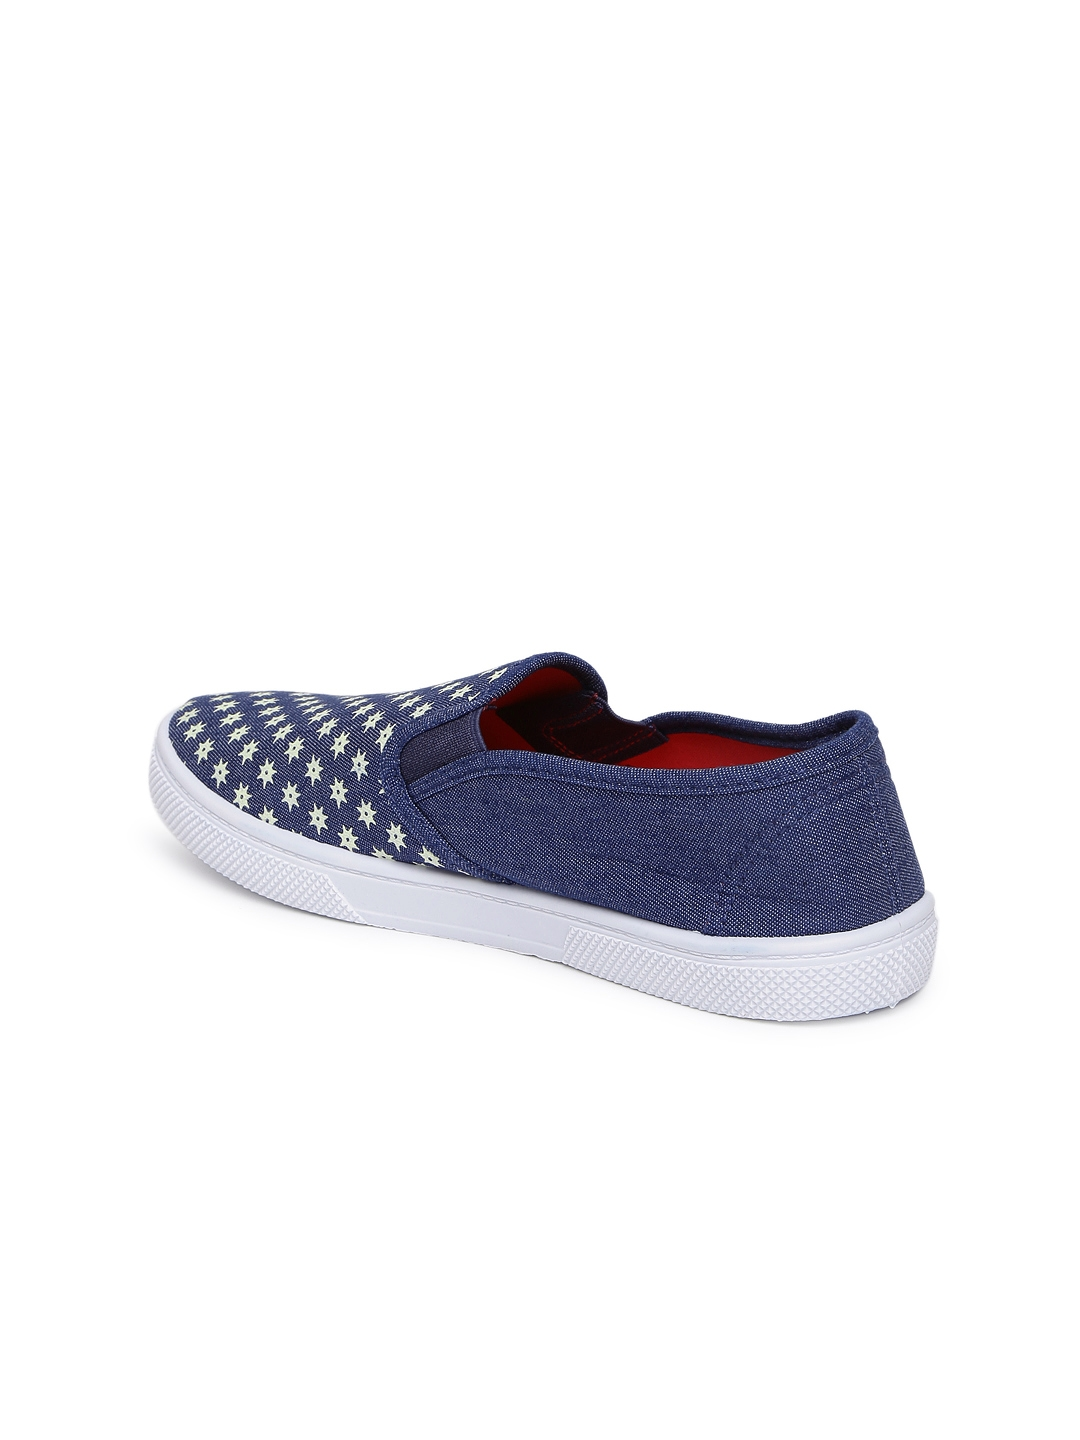 Buy Lavie Women Navy Blue Printed Slip On Sneakers - Casual Shoes ... 3dc5f07d3c6